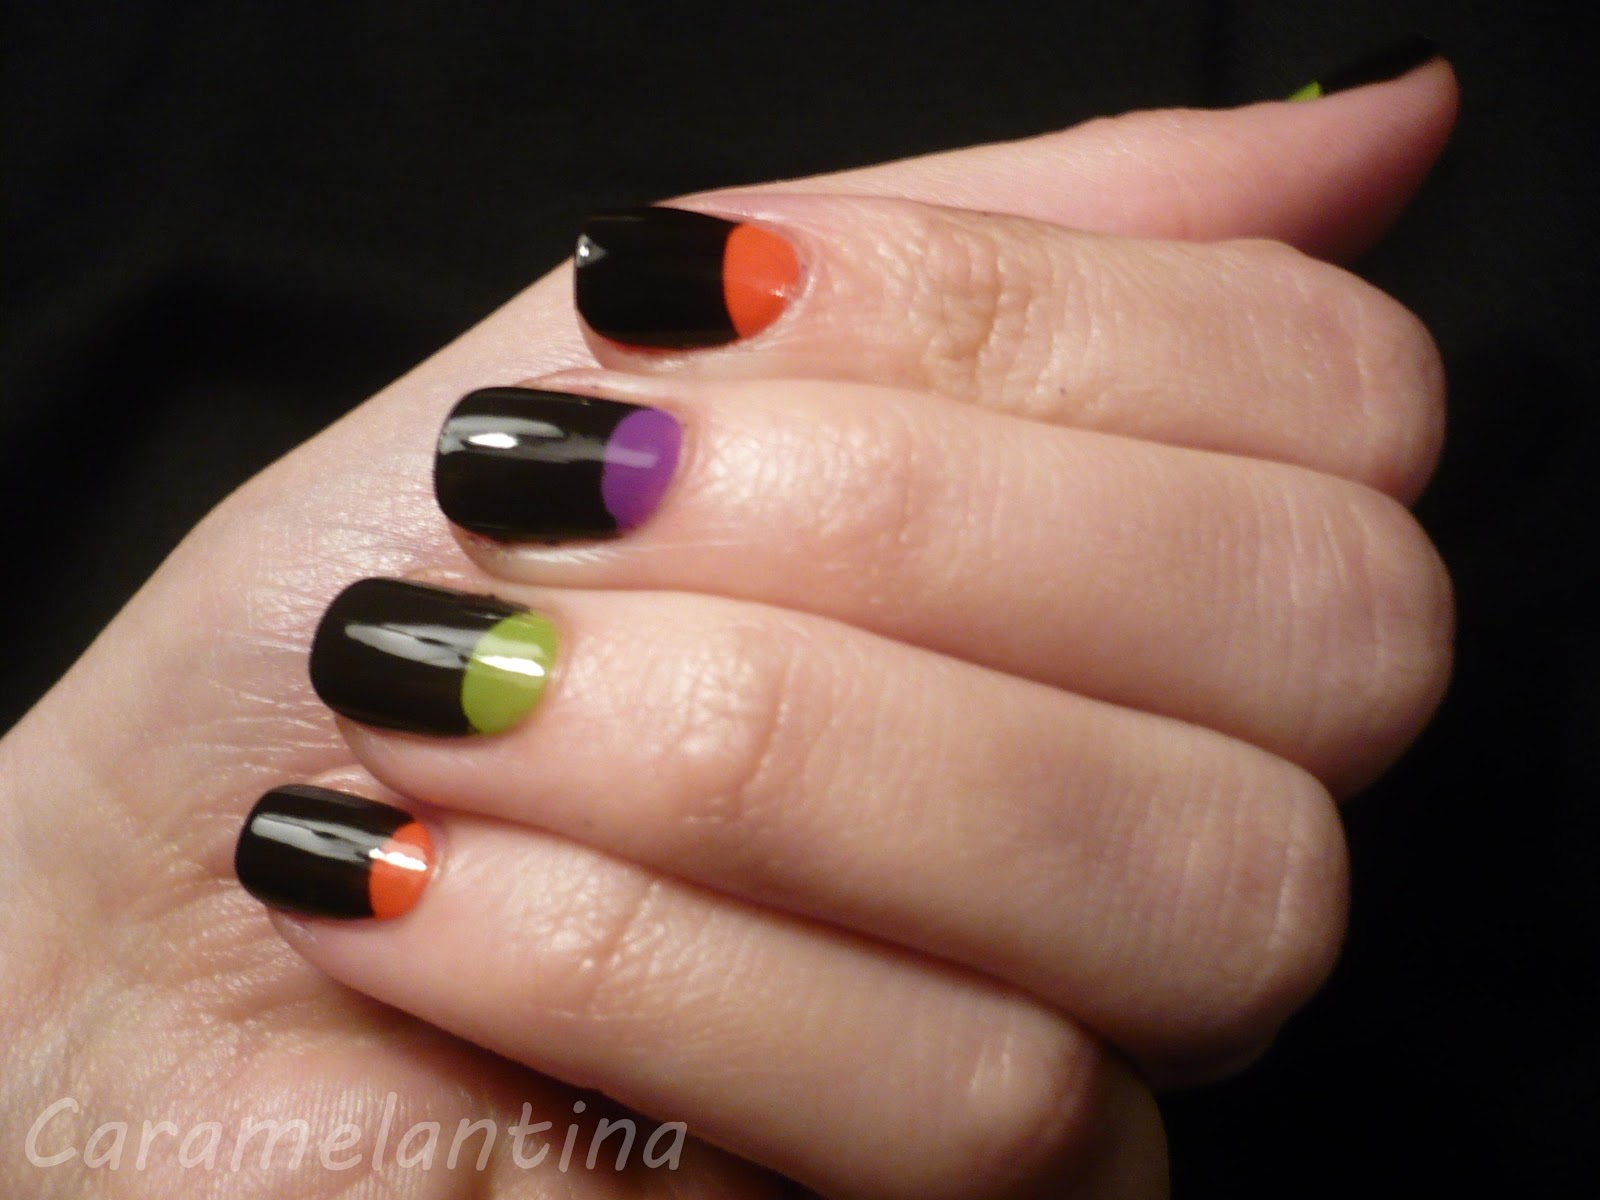 Colorama Black, Maybelline Forever Strong PRO Orange Couture, Mabby Apple, Extreme by Farmacity Giovanna swatch review